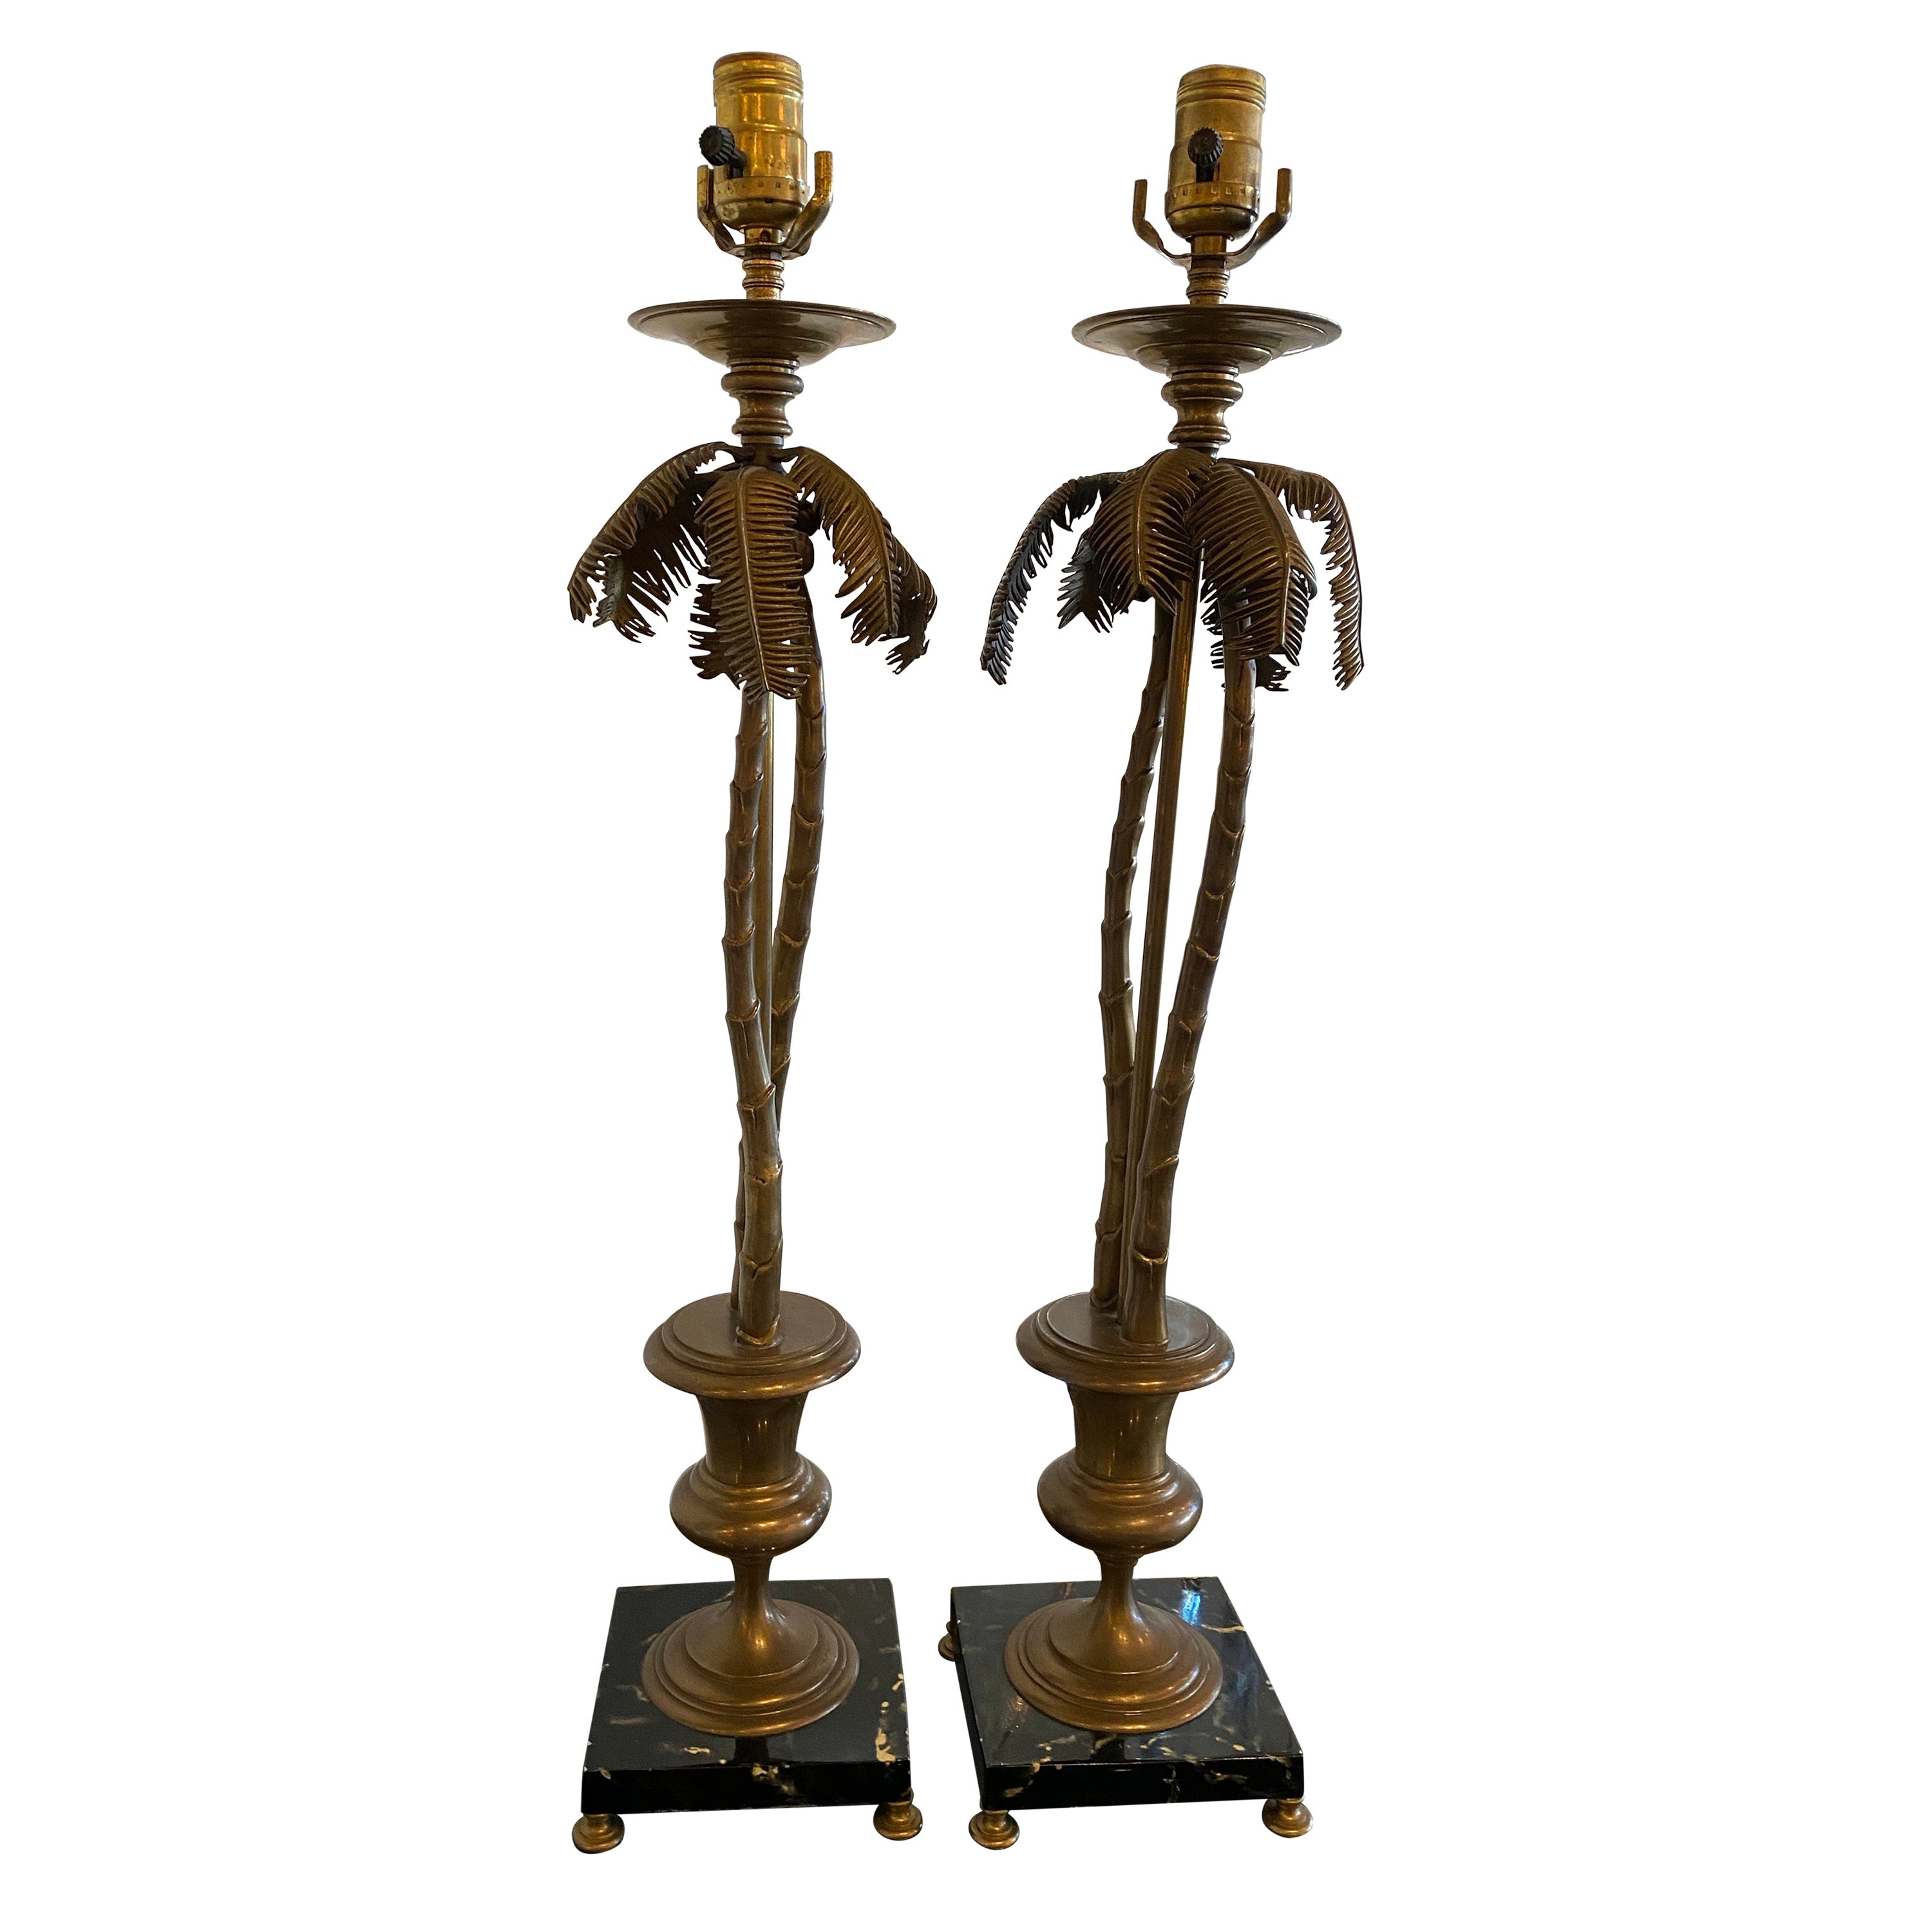 Vintage Pair of Tropical Palm Beach Brass Marble Palm Tree Table Lamps